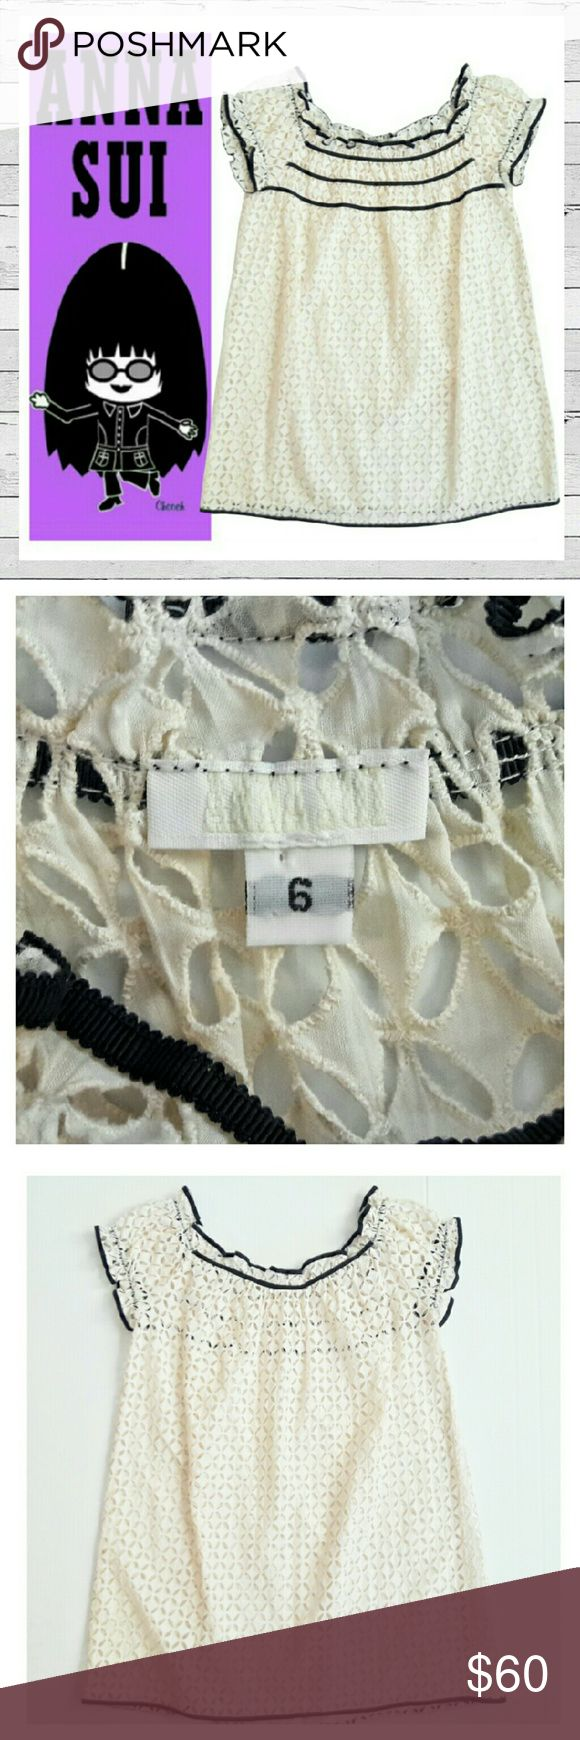 Anna Sui Eyelet Babydoll Top With Grosgrain Trim Fabulous Anna Sui Babydoll top in Ivory with Black Grosgrain ribbon detail. Designed to be layered over contrasting bra or cami. This is a couture piece, not from Target. This is an amazing peice in excellent condition! Sorry no trades. Anna Sui Tops Blouses